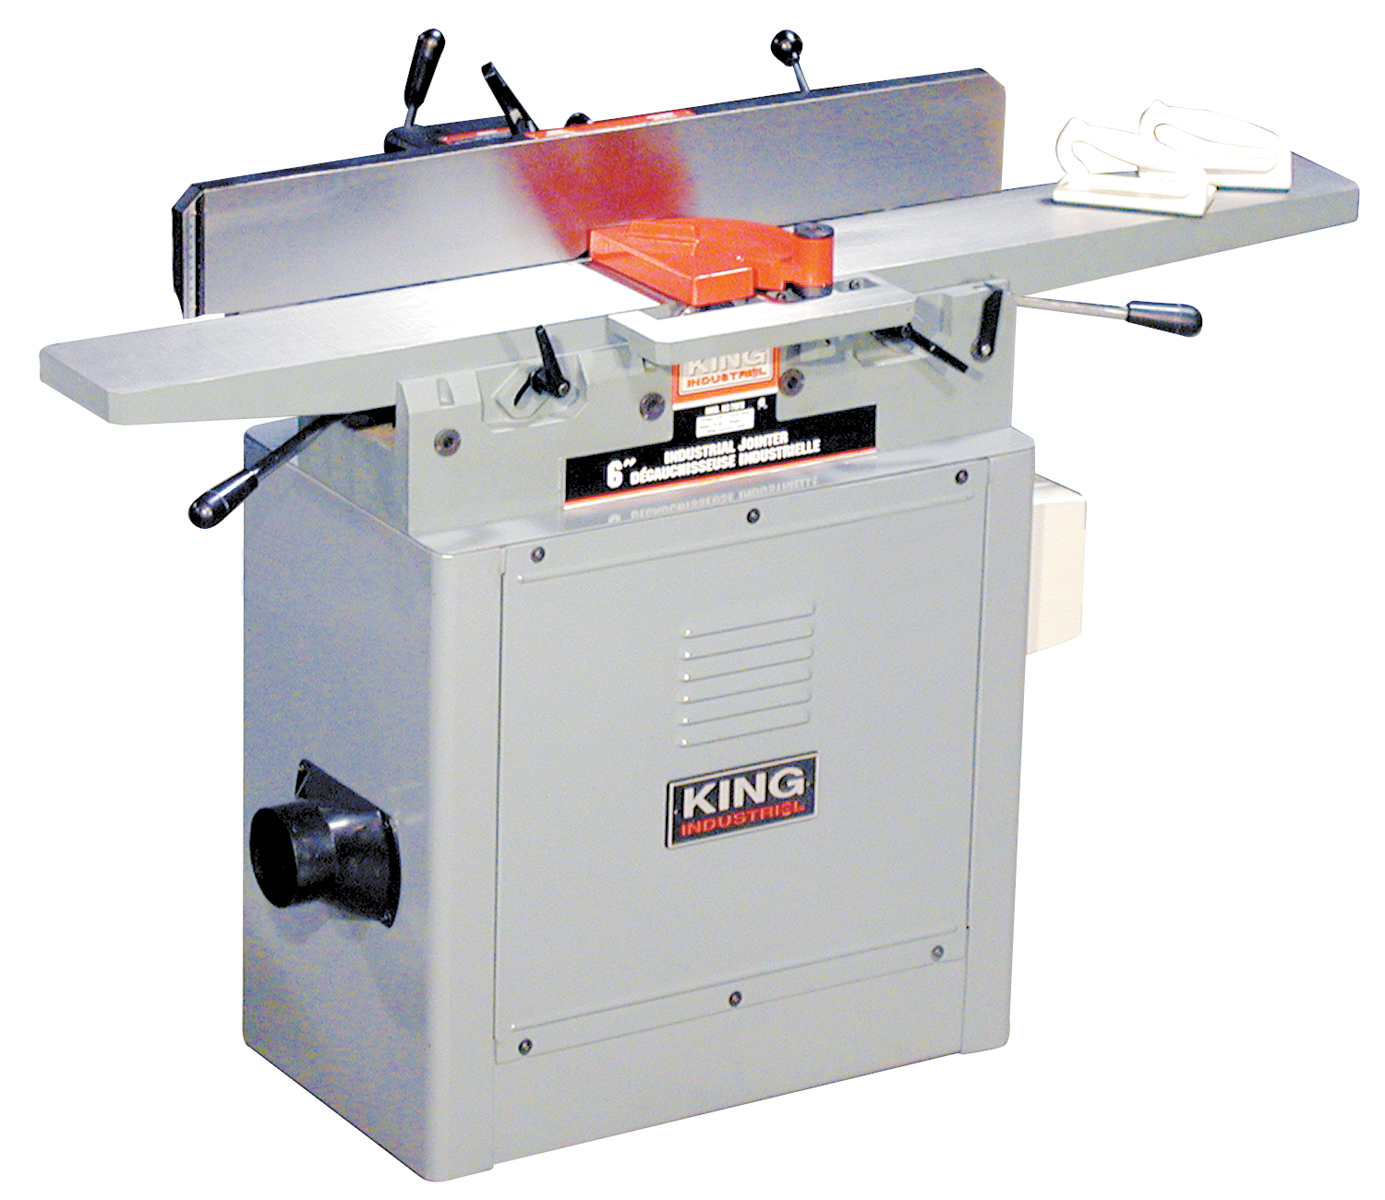 King Industrial KC-70FX Jointer, 6 15amp, 110V